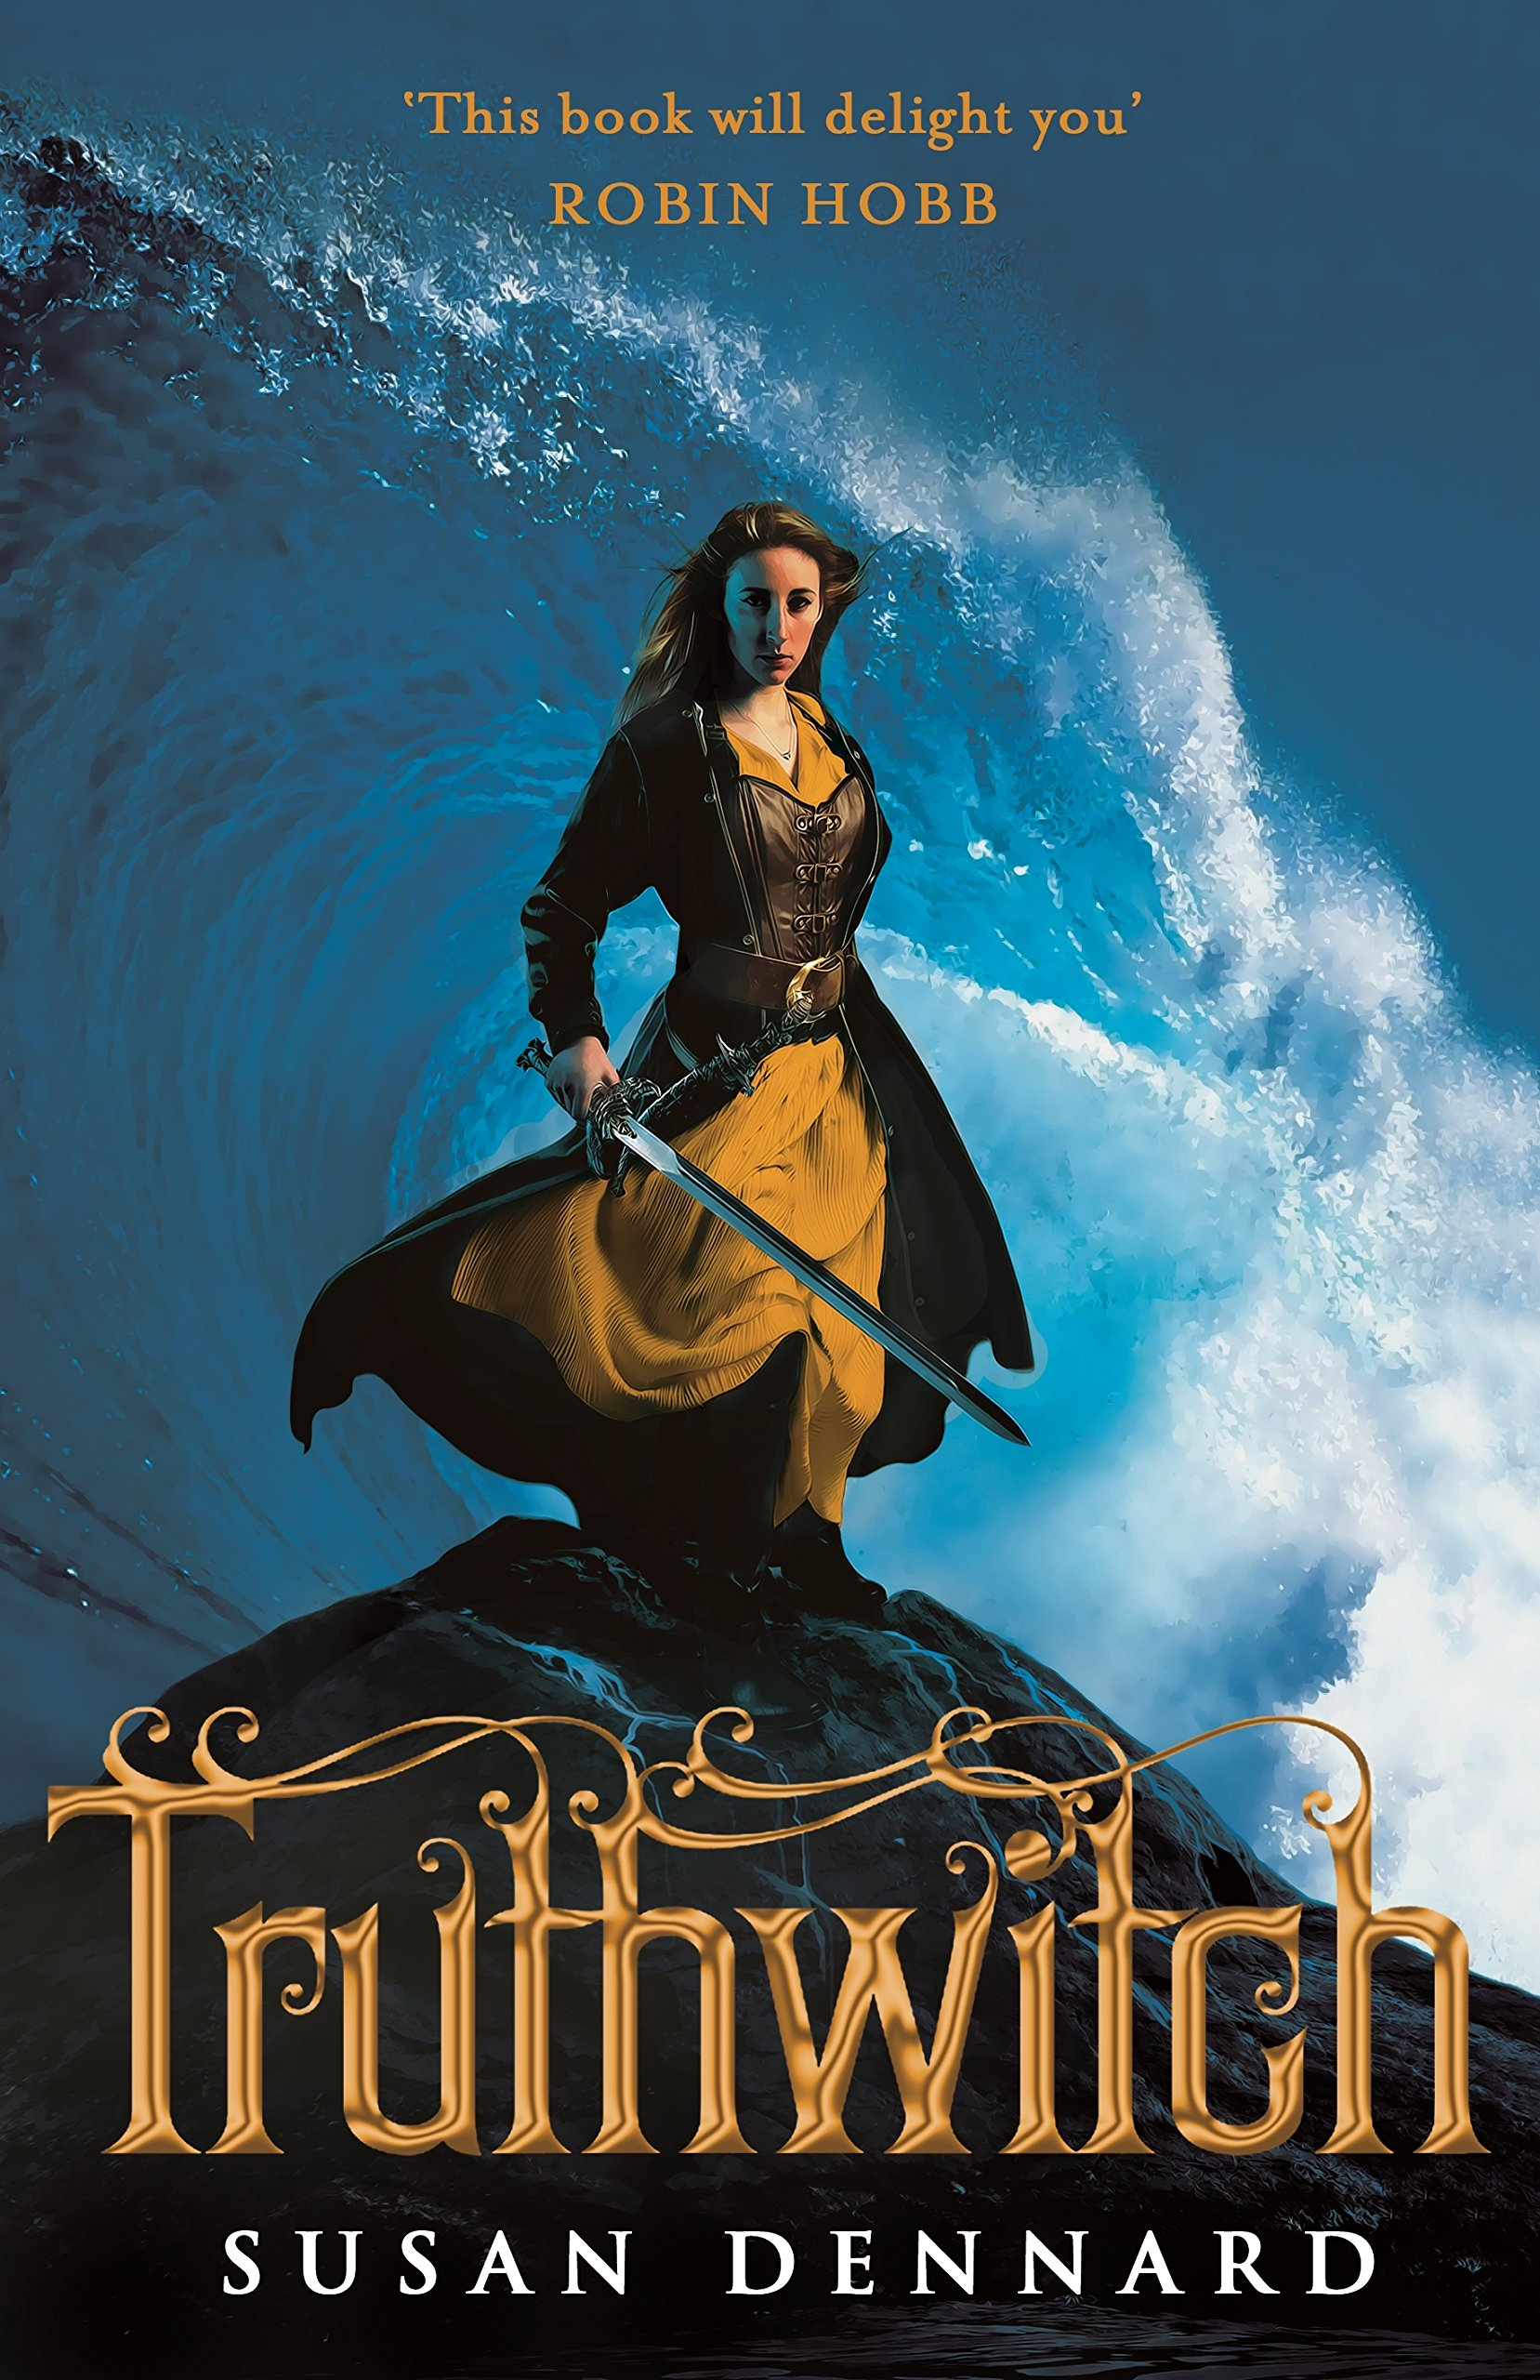 Truthwitch (The Witchlands Series): Amazon.es: Susan Dennard ...